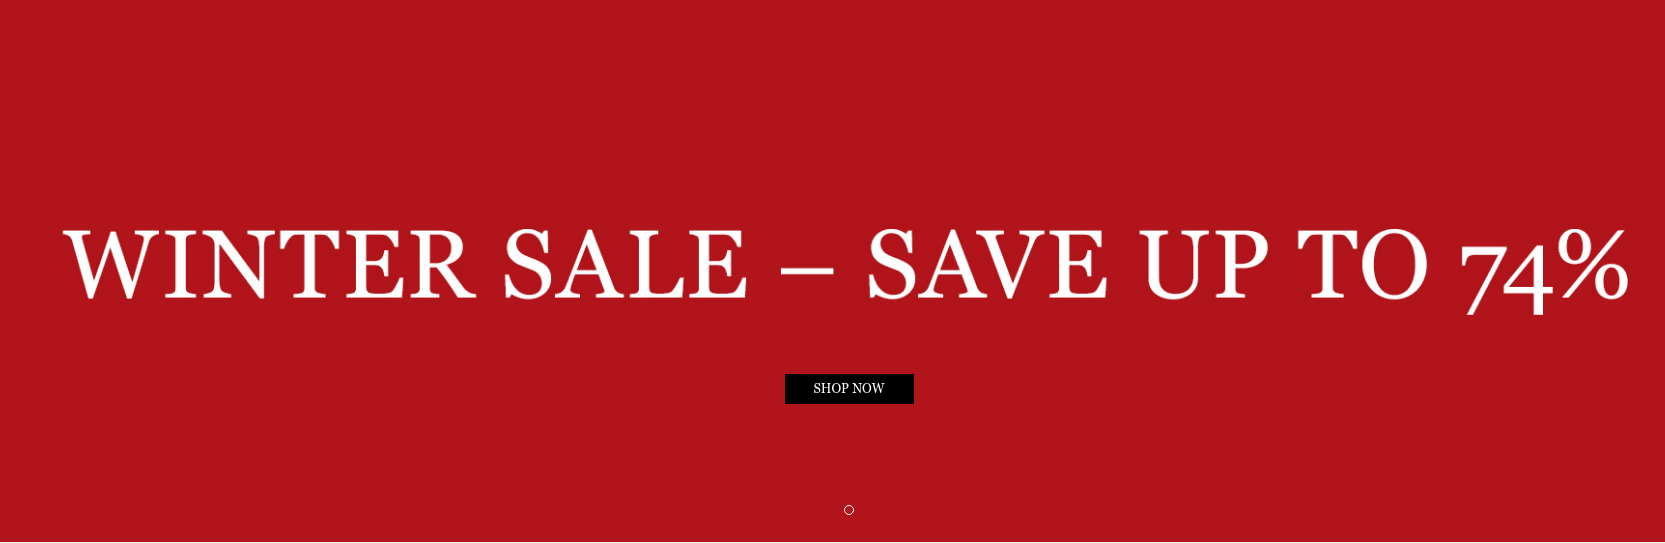 Brook Taverner Brook Taverner: Winter Sale up to 74% off mens suits, jackets, trousers, shirts and more